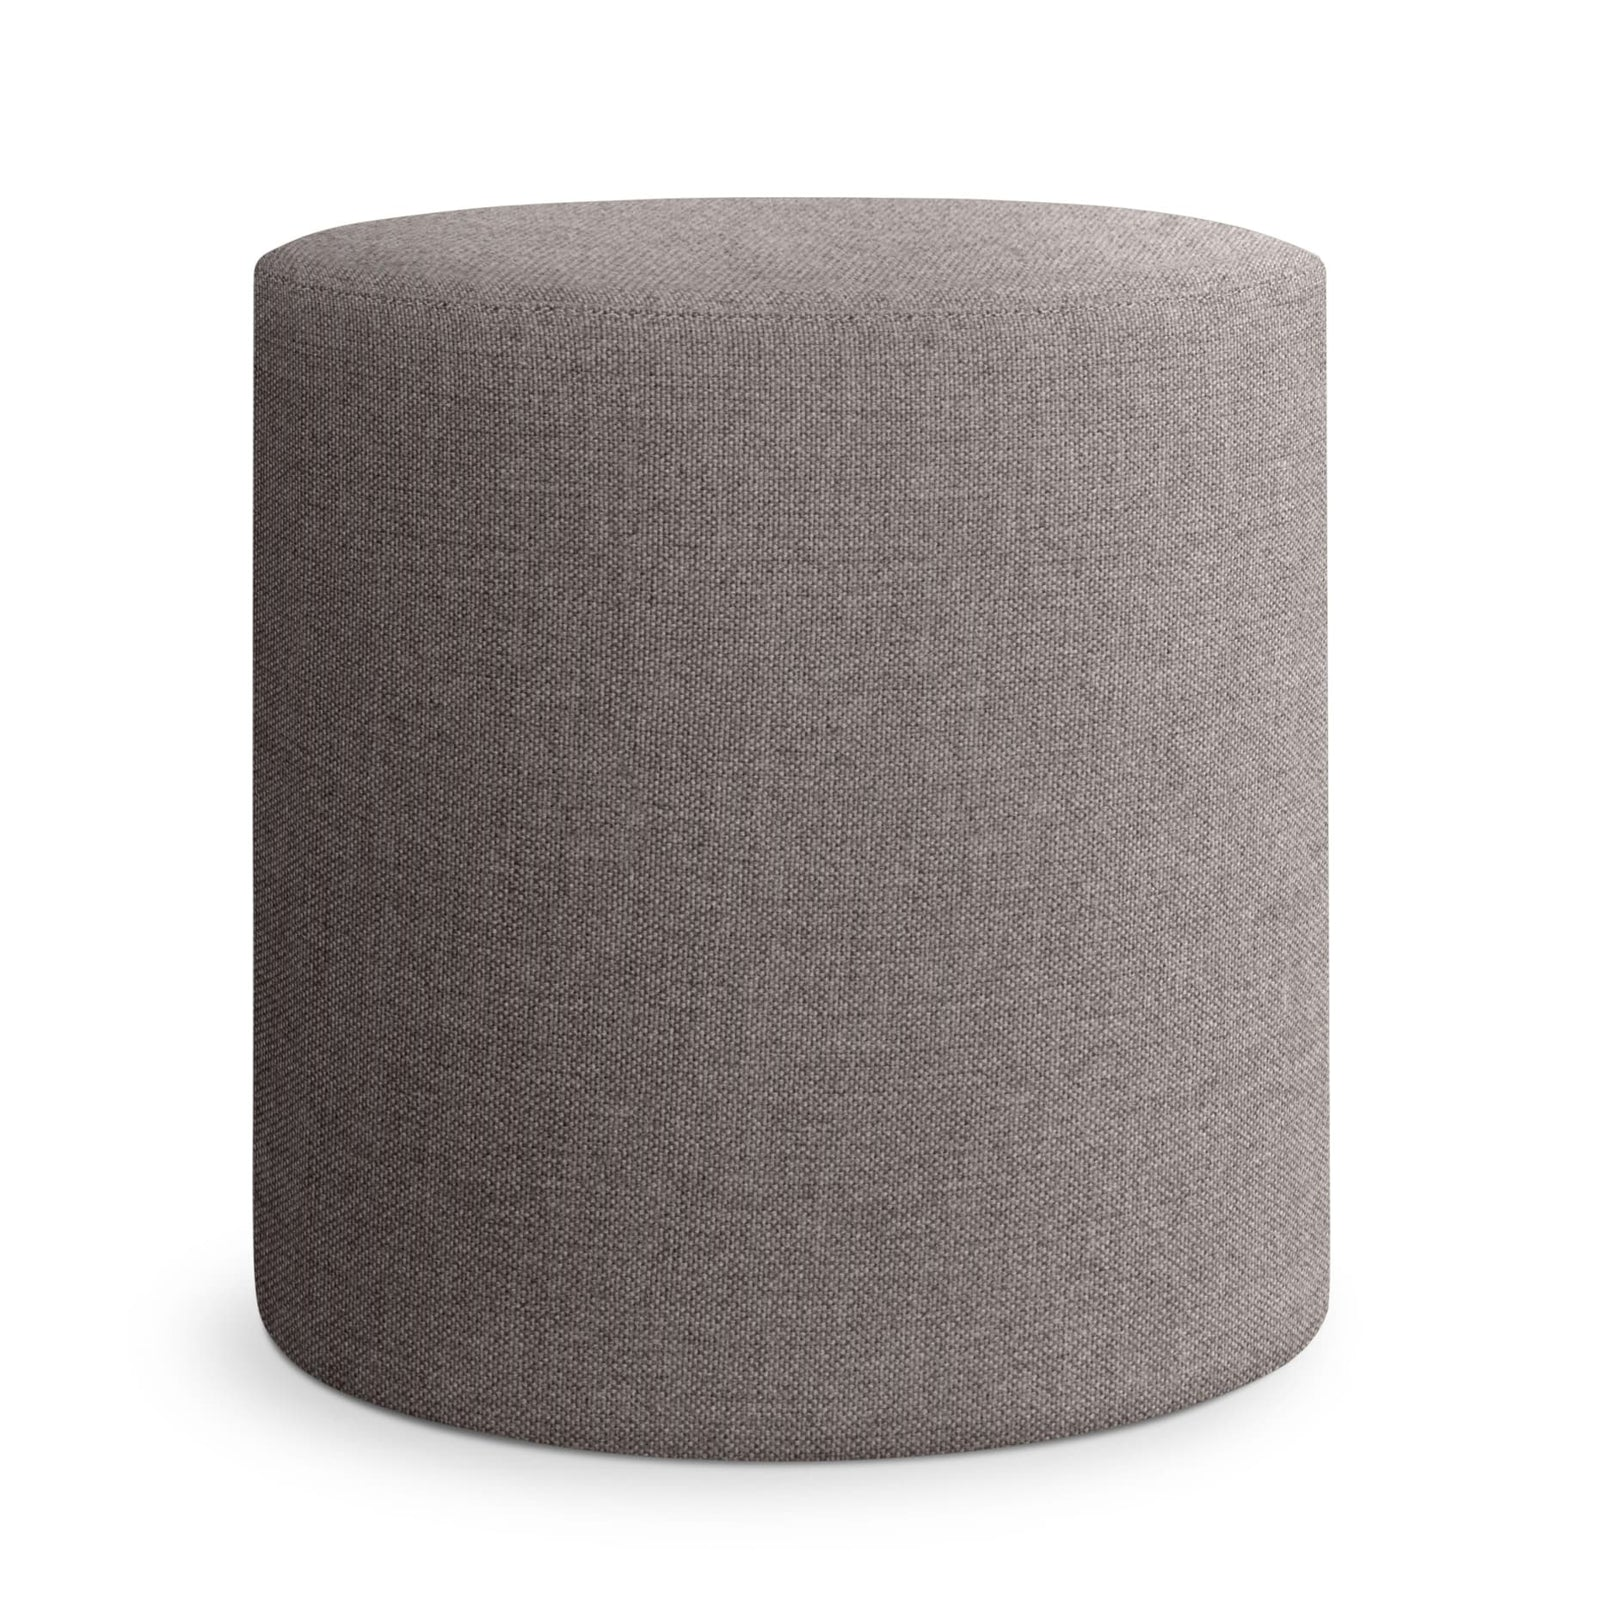 Blu Dot Furniture Small / Toohey Charcoal Bumper Outdoor Ottoman